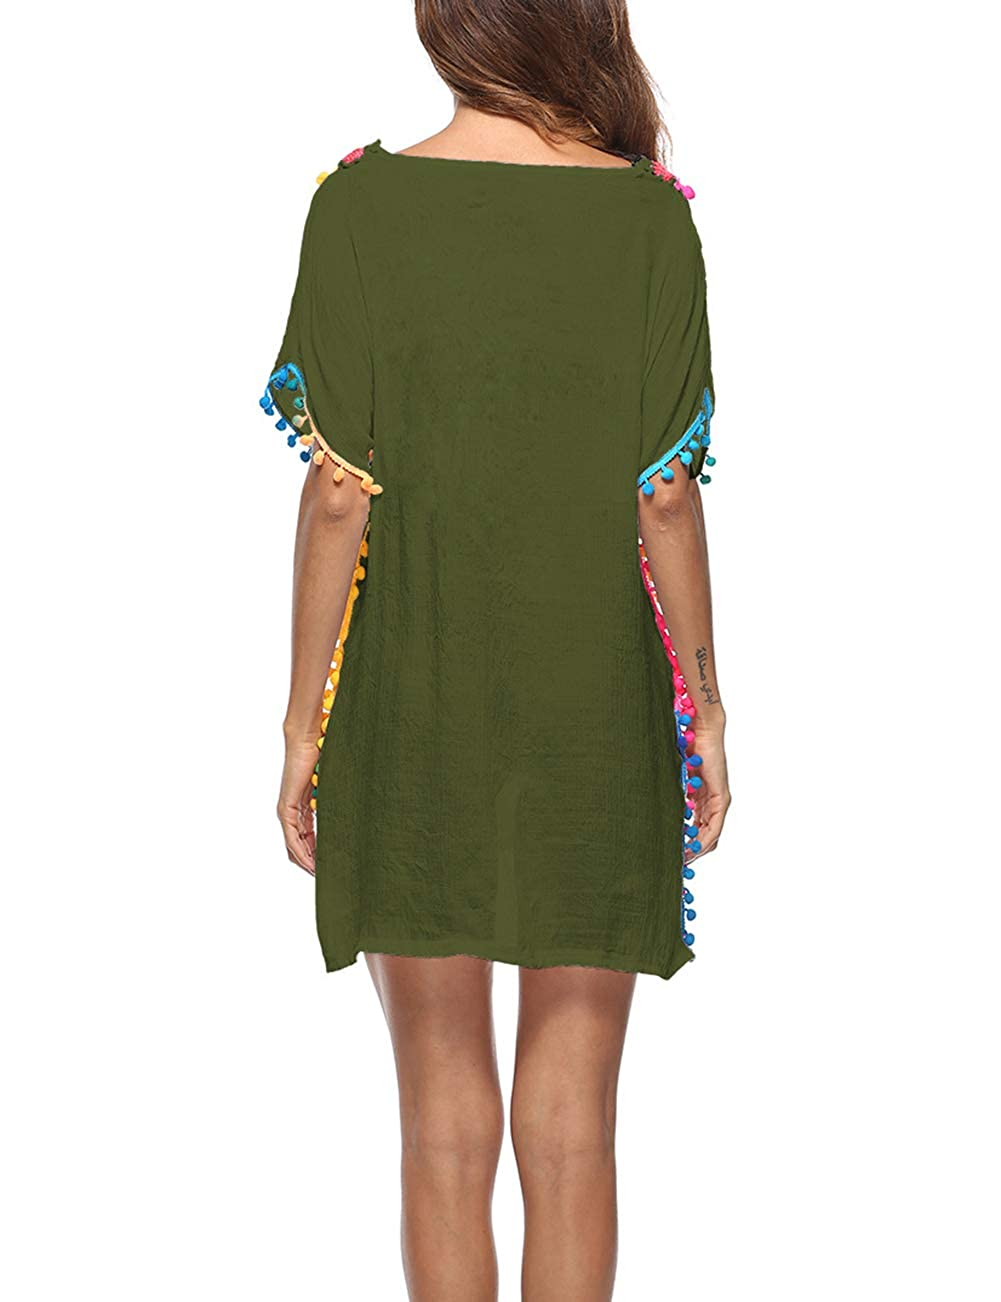 ad9de84dd0 Bsubseach Women Half Sleeve Swimwear Beach Tunic Dress Loose V Neck  Embroidered Cover Up Army Green at Amazon Women's Clothing store: